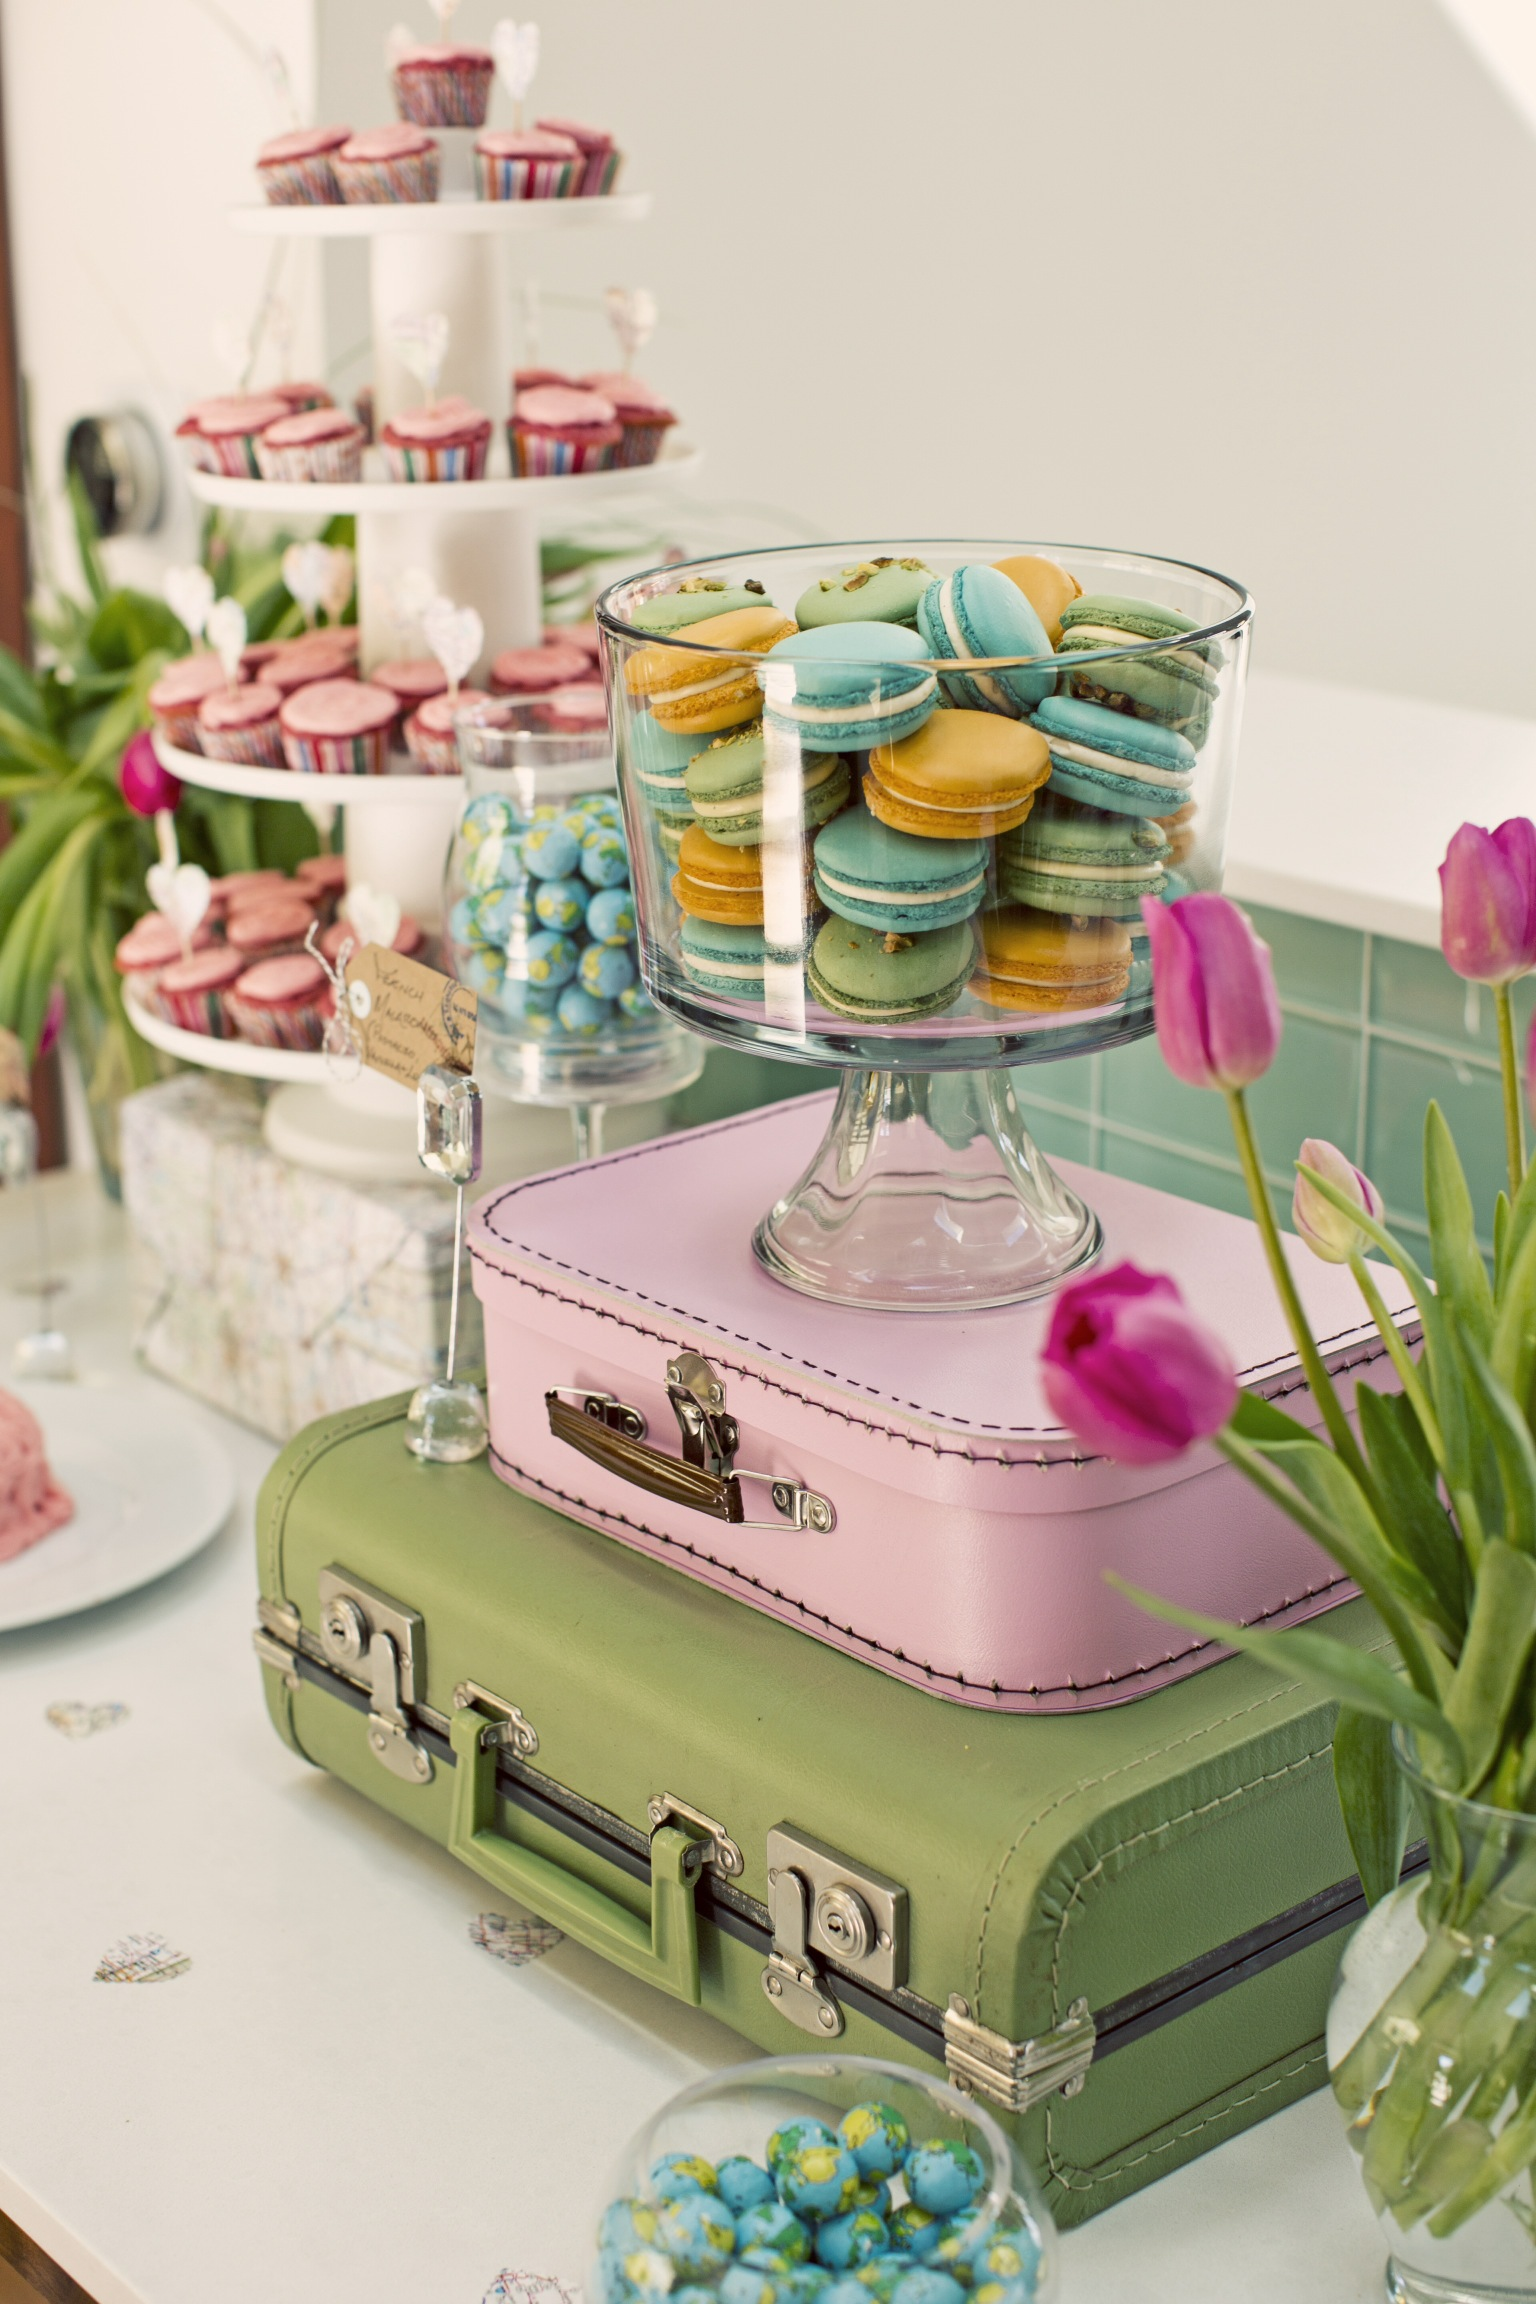 Stacked Suitcases and Colorful Macaroons